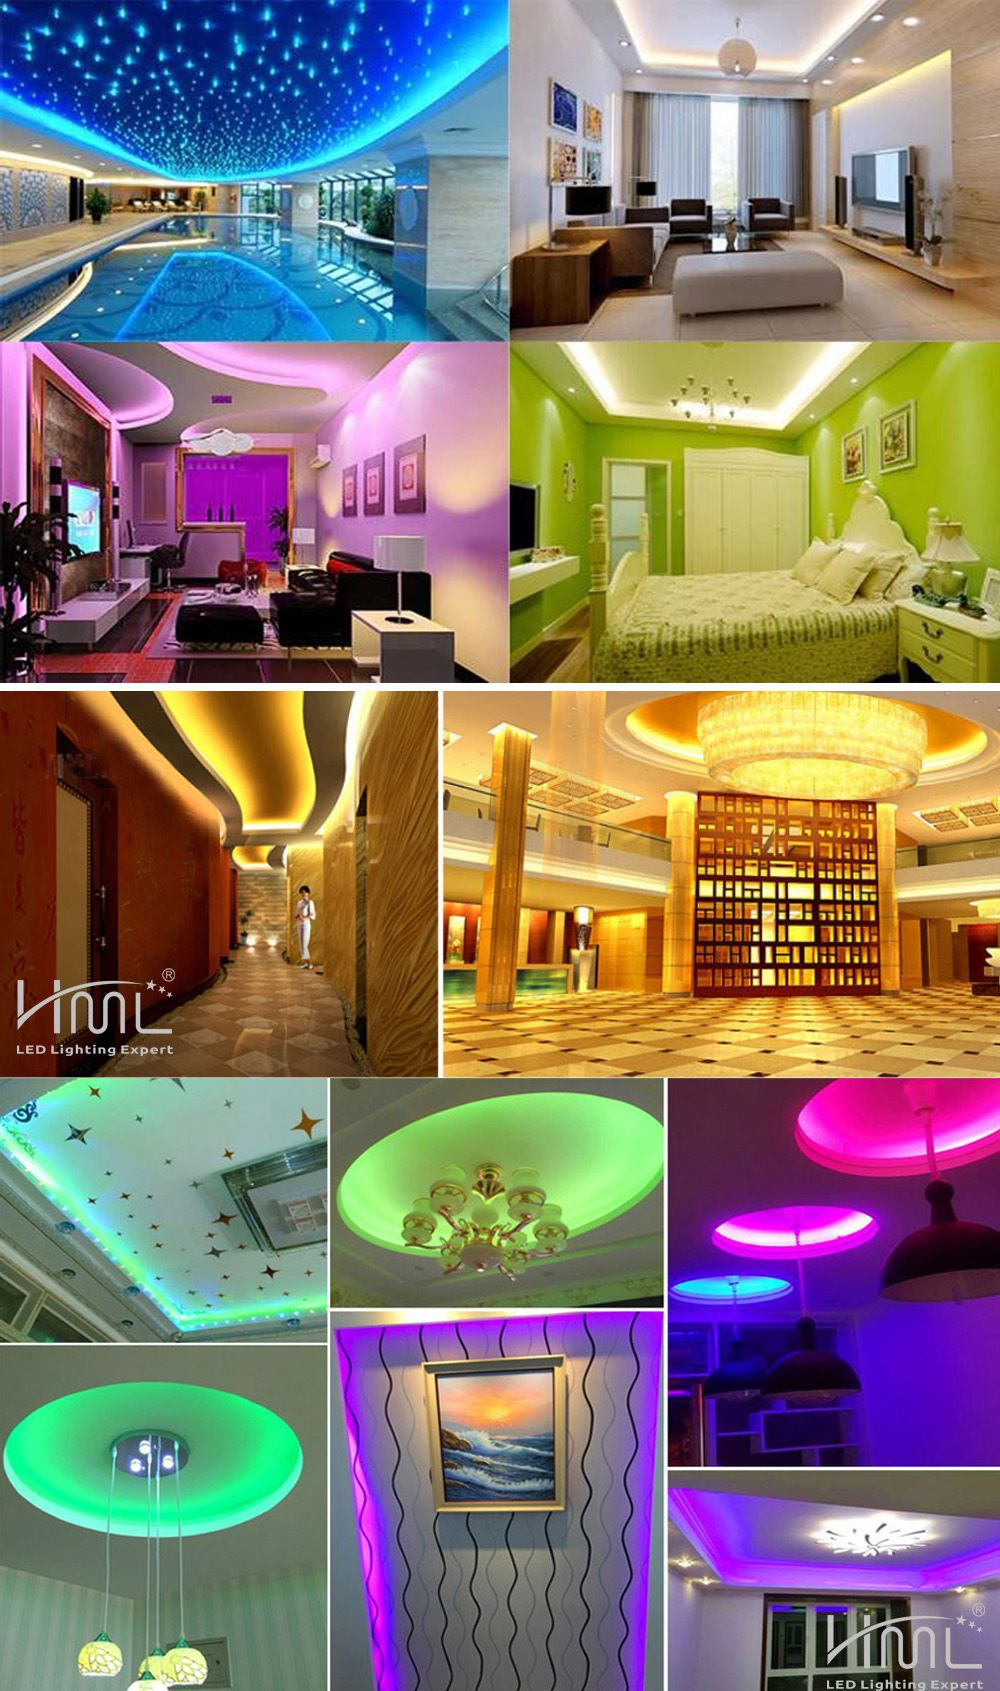 HML LED Strip Light 5M 24W RGB SMD2835 300 LEDs - RGB COLOR with IR 44 Keys Remote Control and US  Adapter